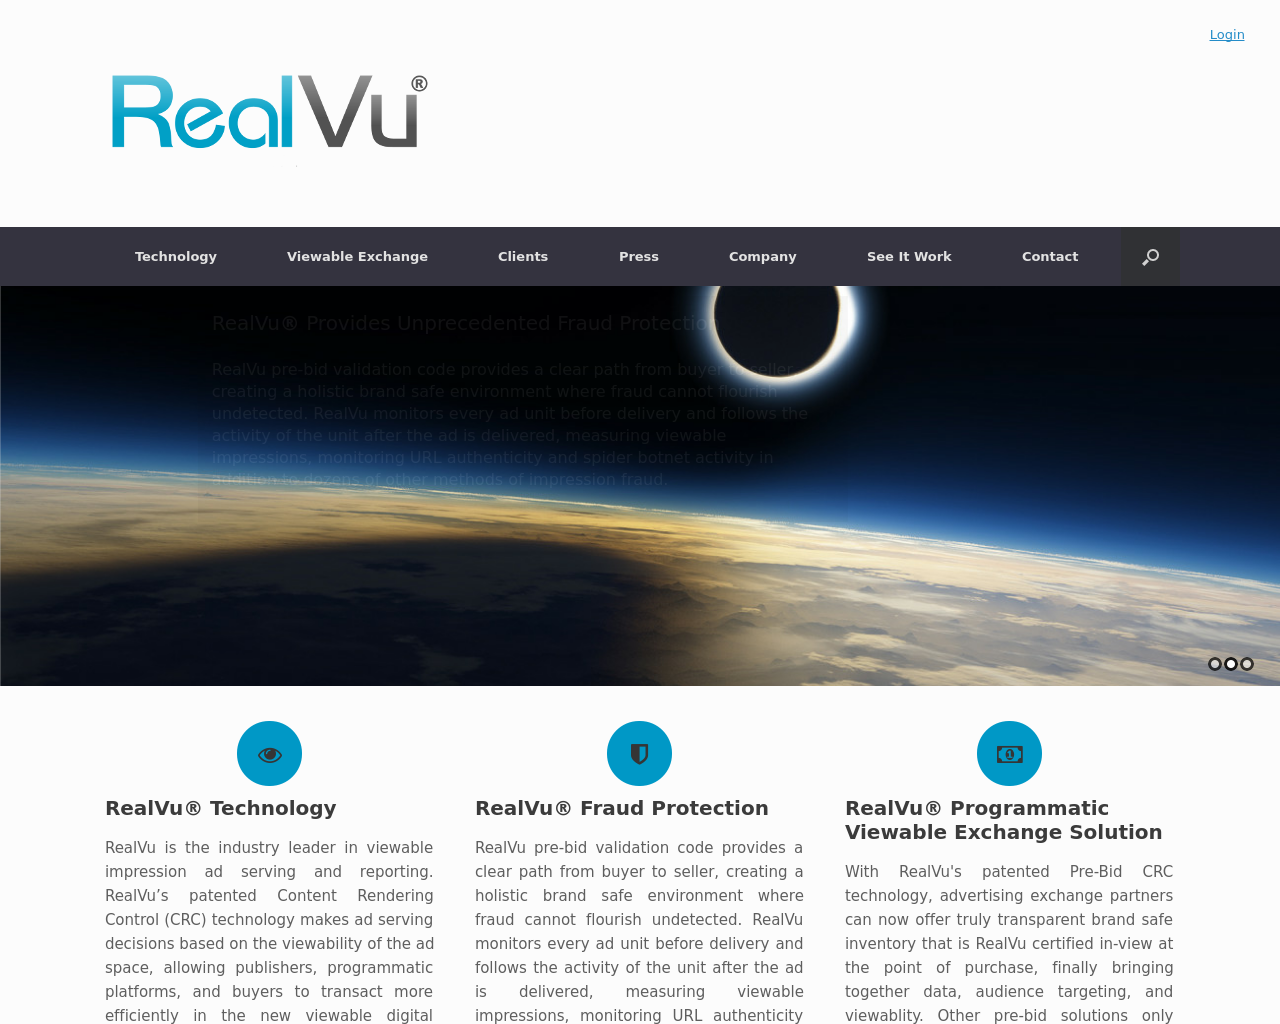 RealVu-Advertising-Reviews-Pricing